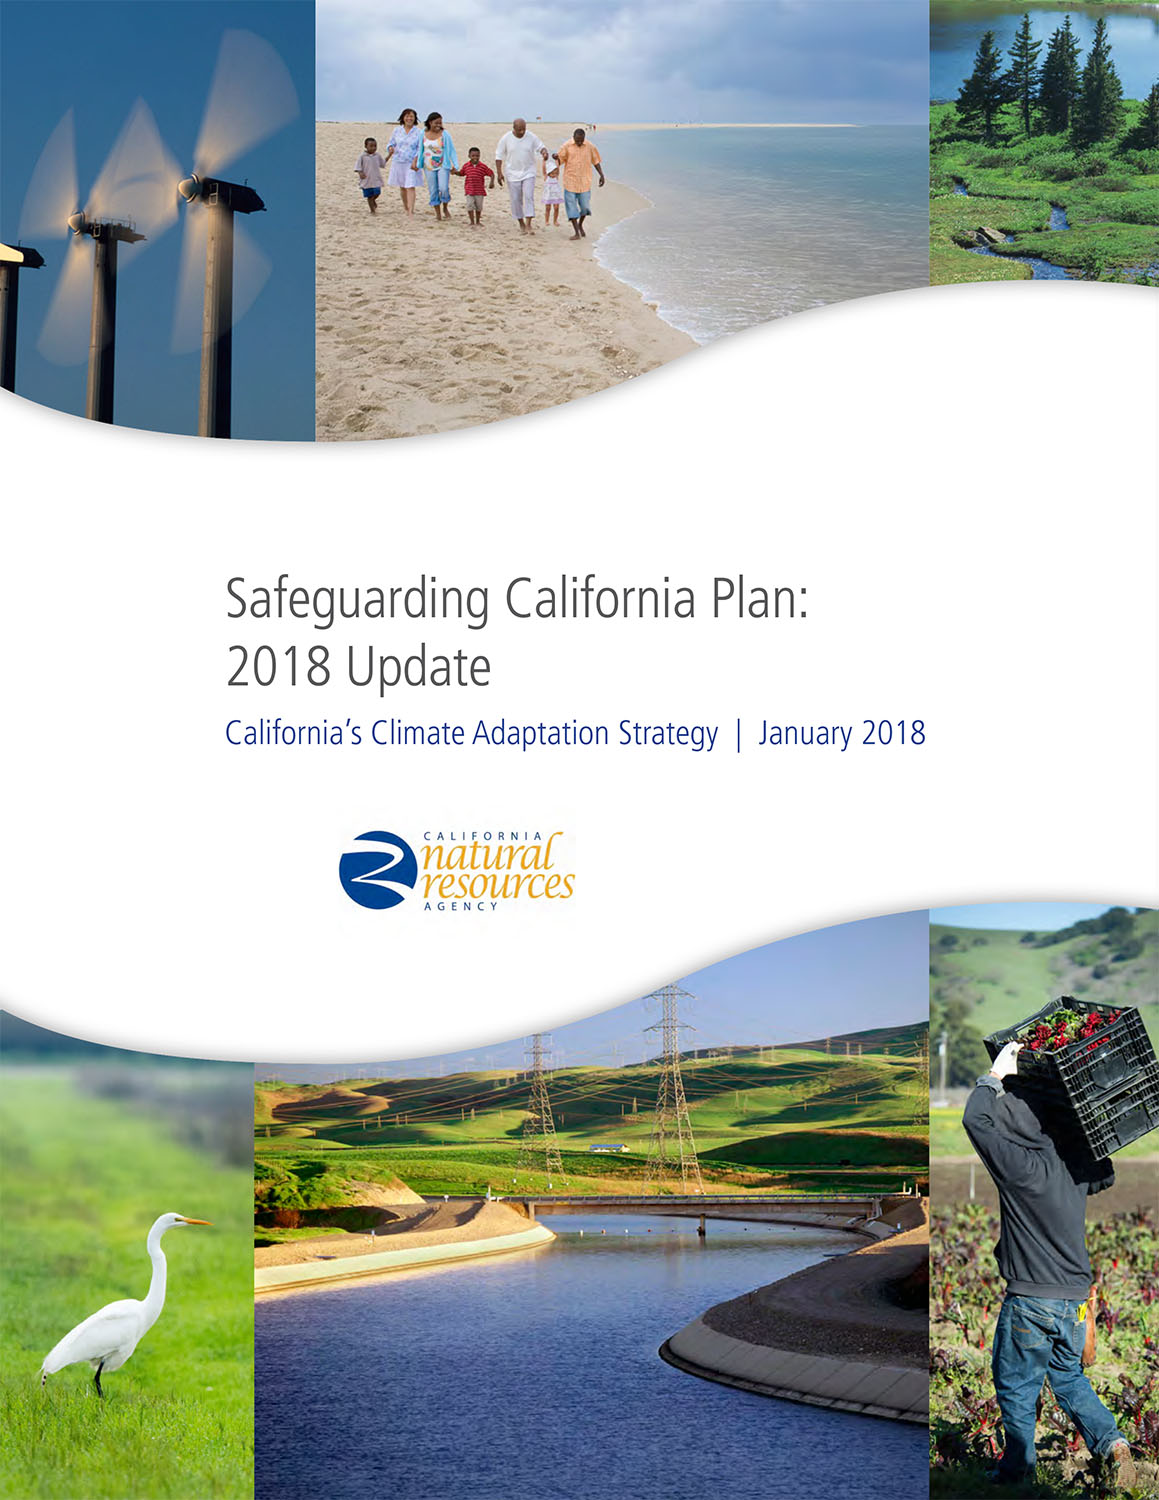 safeguarding-california-plan-2018-update-1.jpg